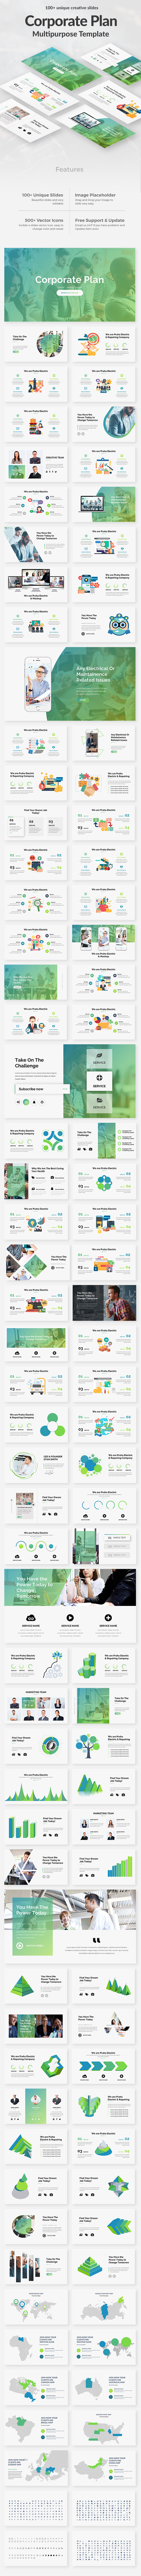 GraphicRiver Corporate Plan Multipurpose Google Slide 21154397